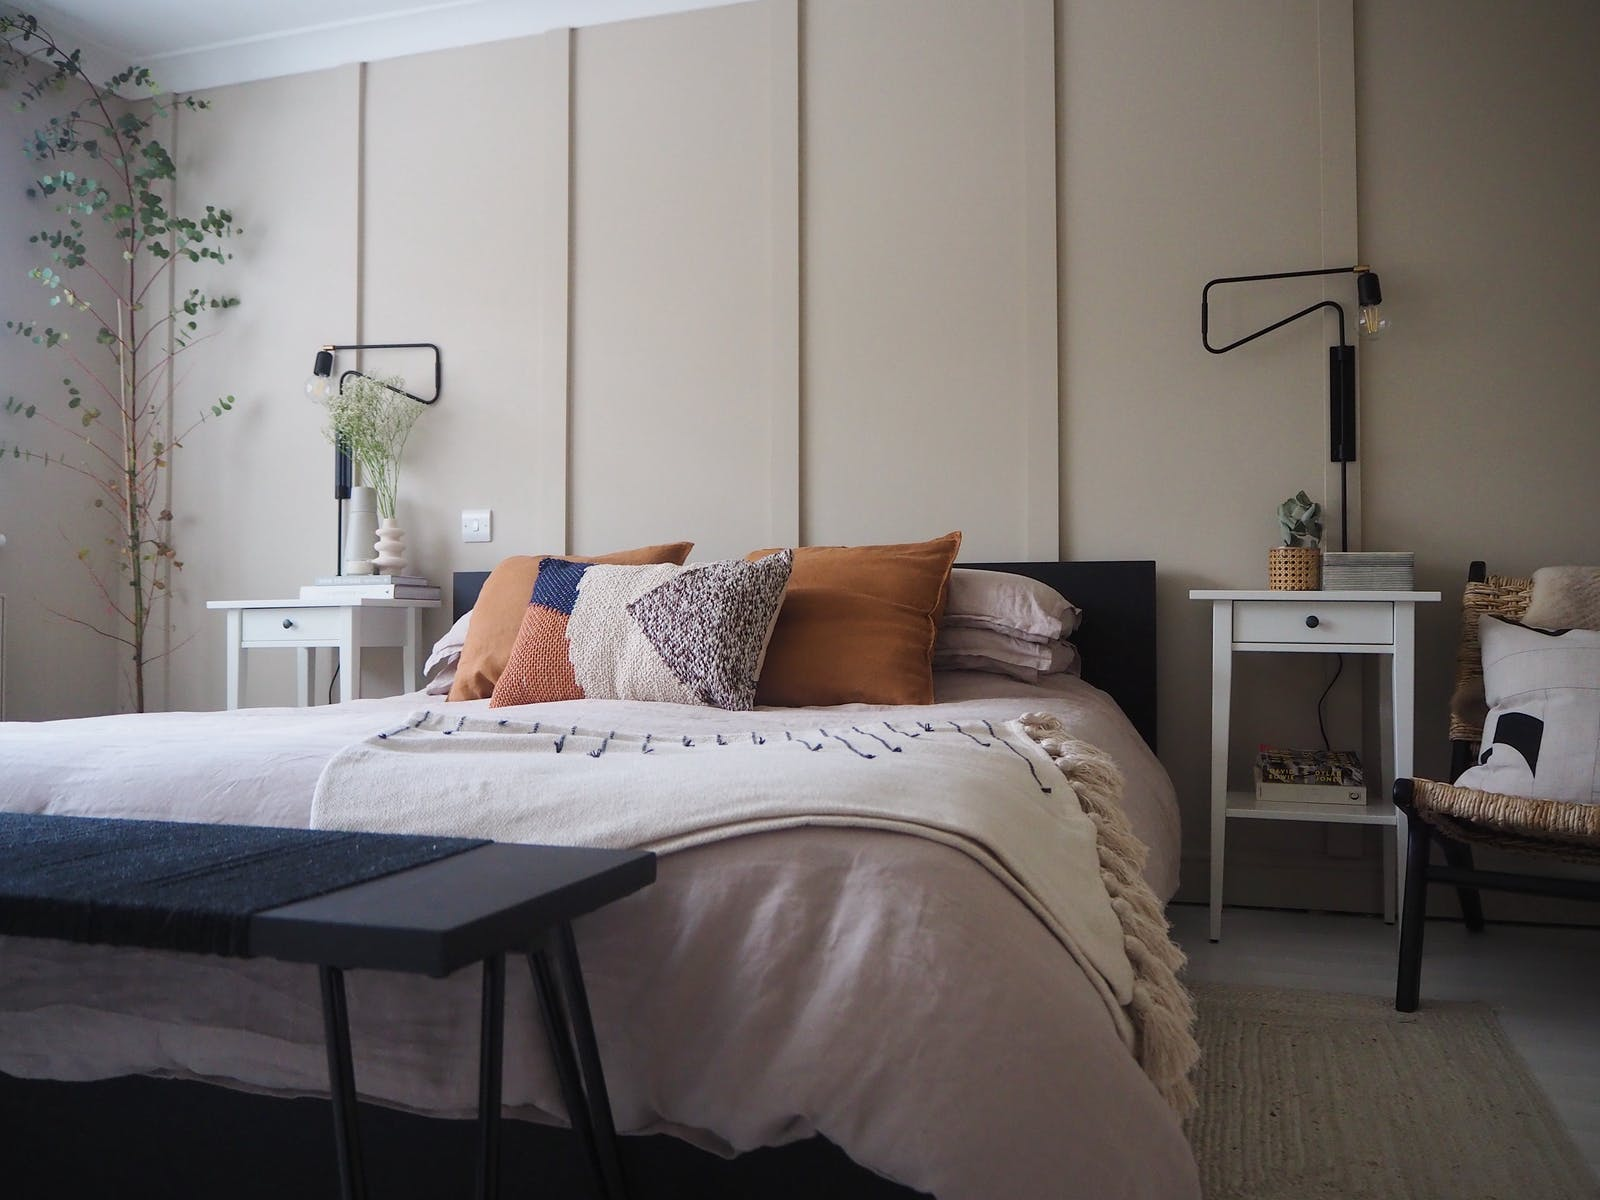 Bright and spacious bedroom with beige panelling